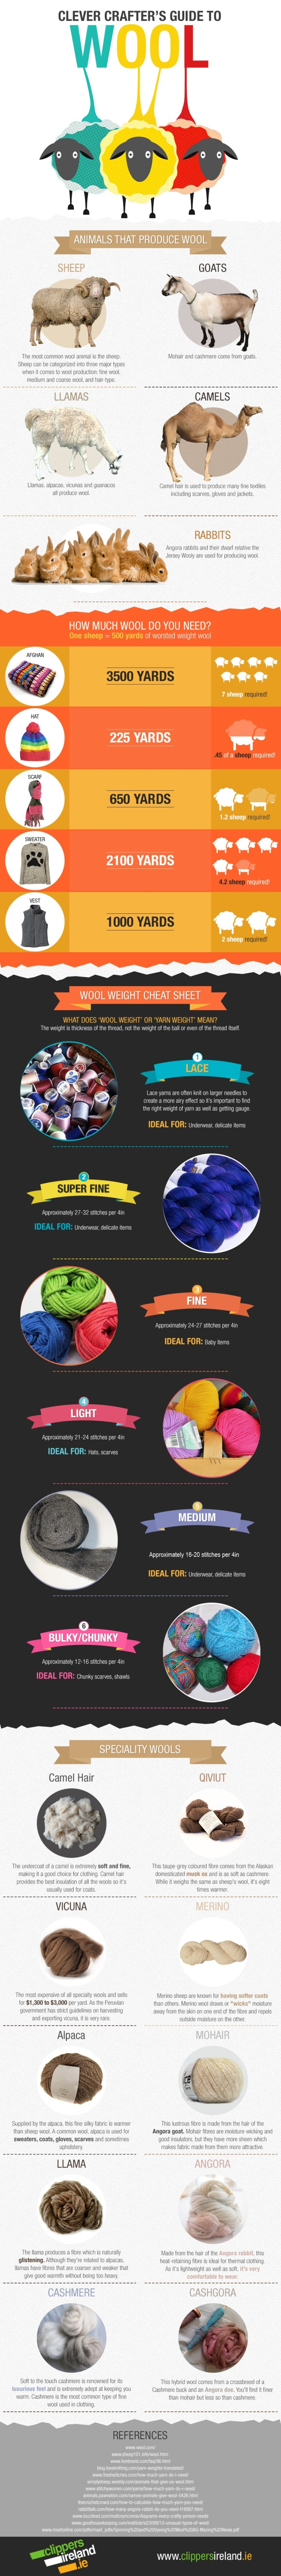 guide to wool.jpg